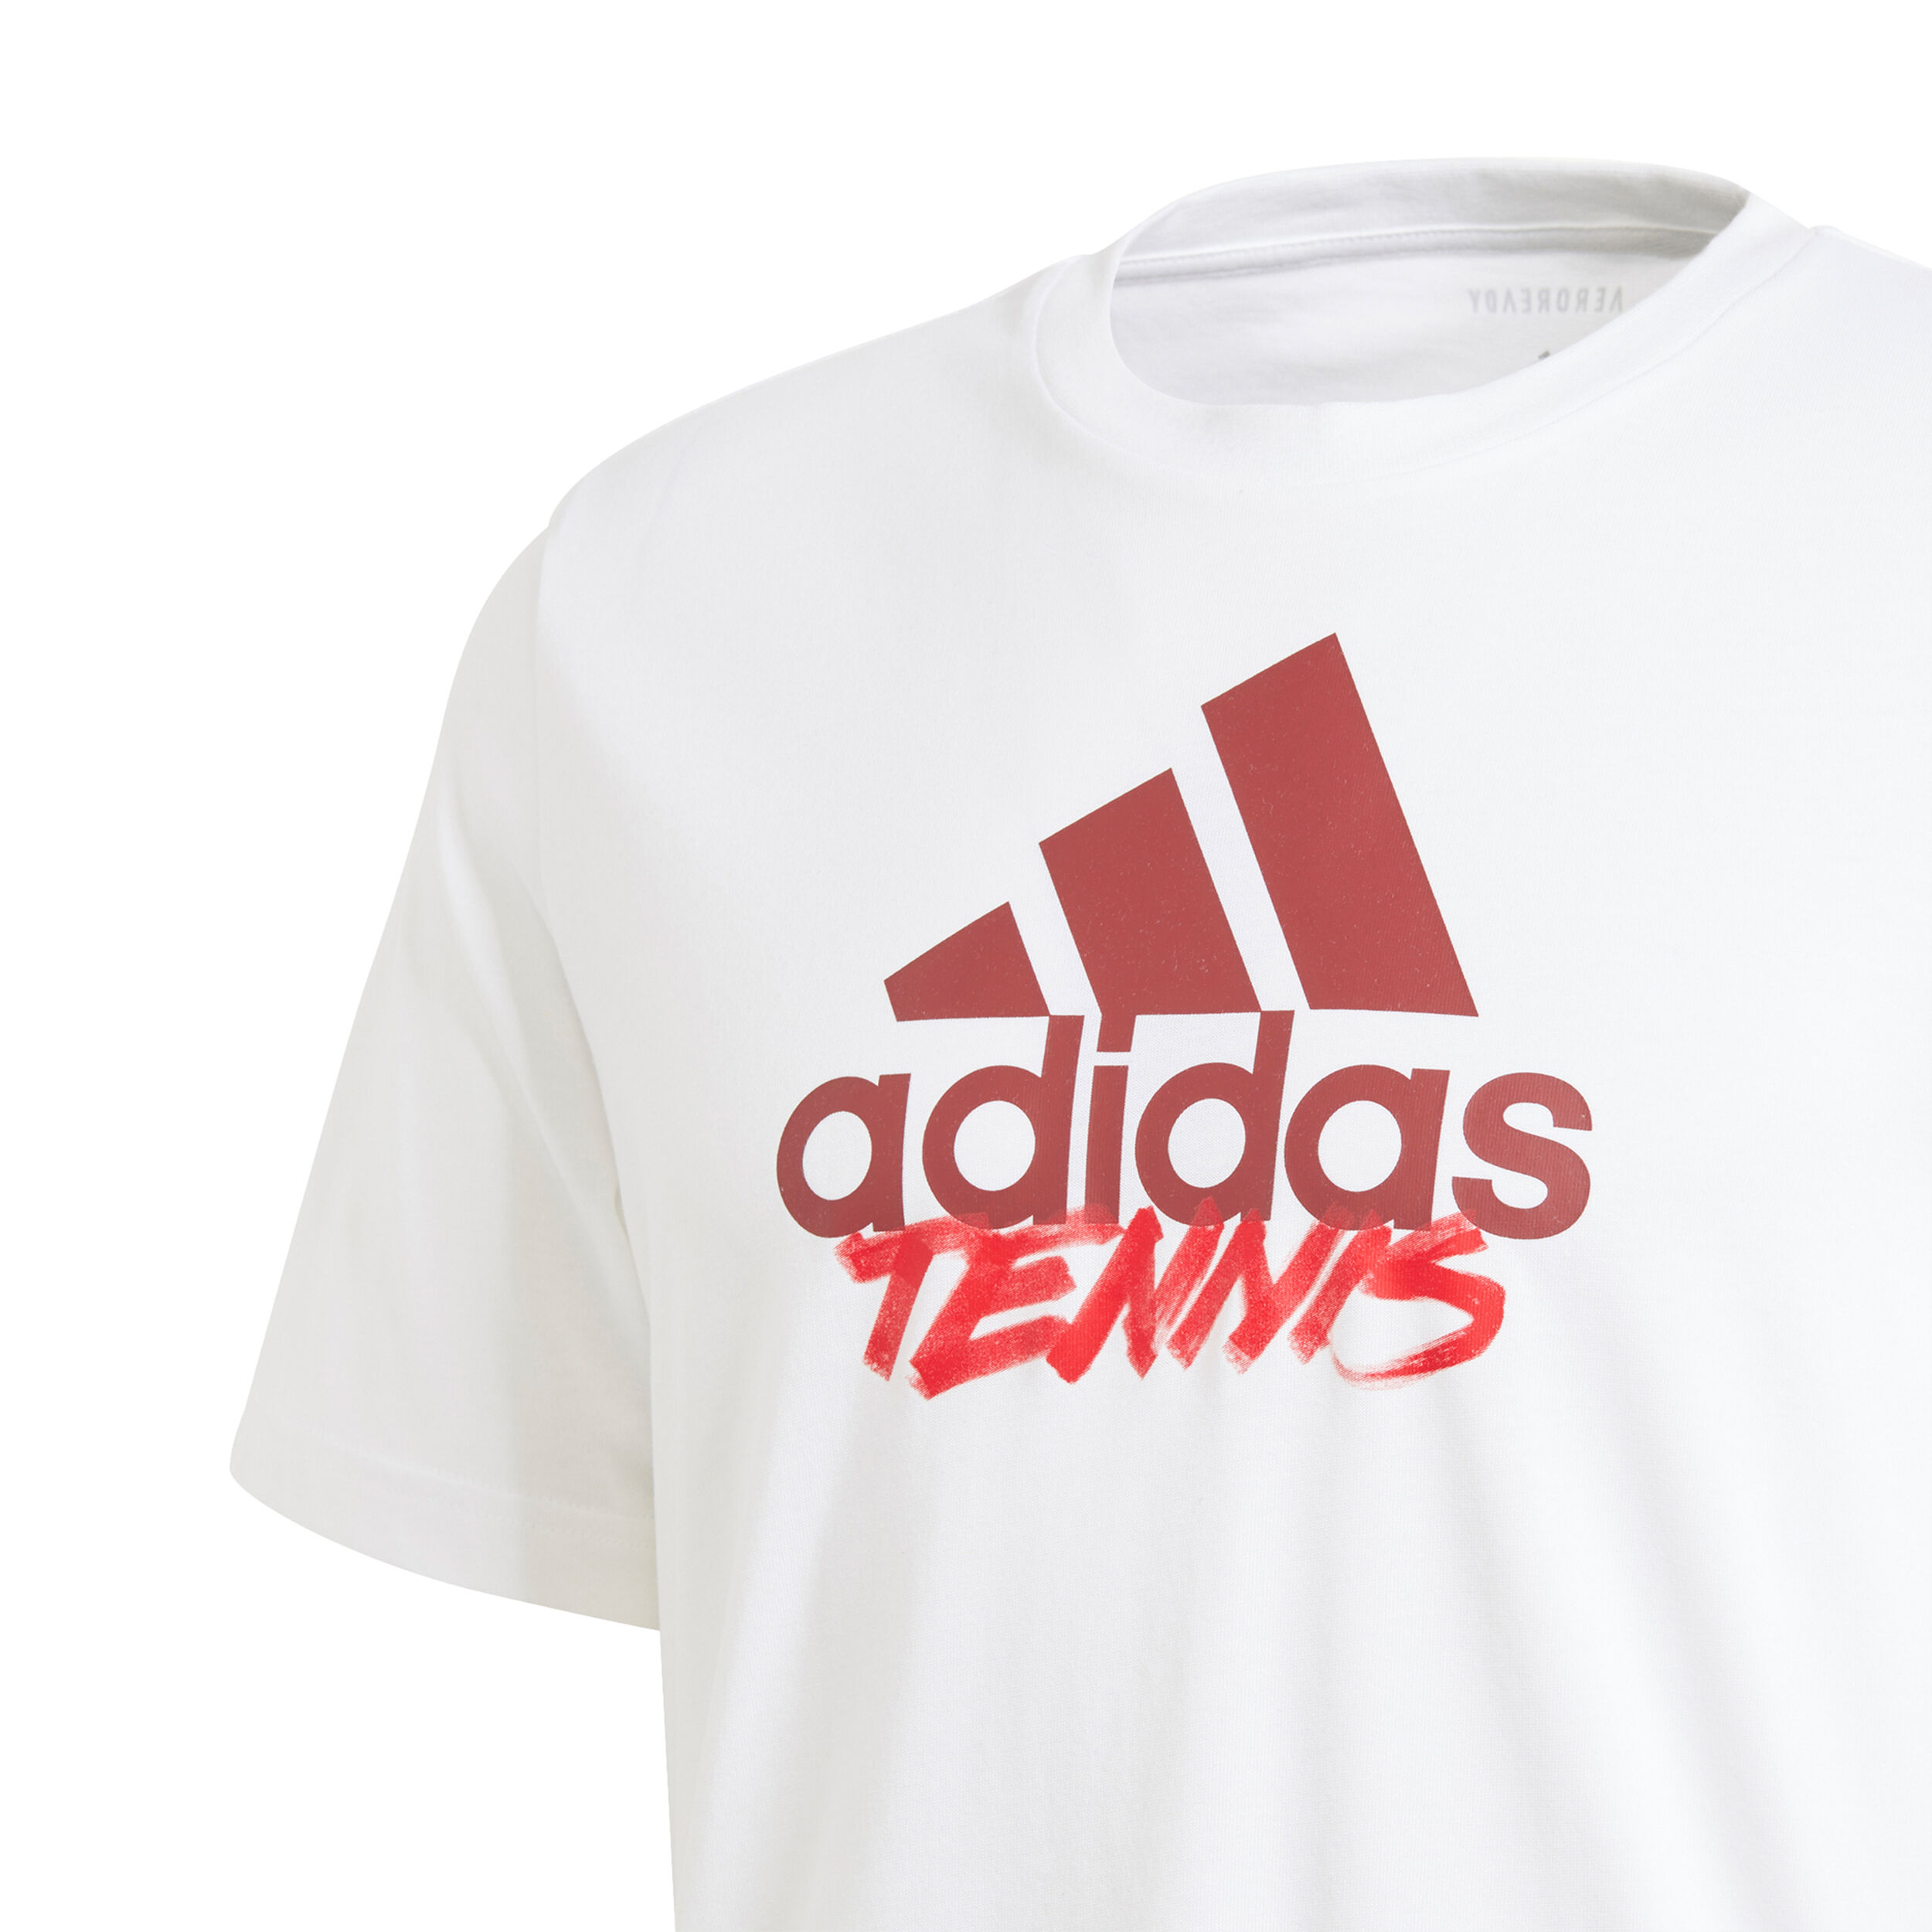 adidas Adi International Tee, T Shirt, Herren Weiss